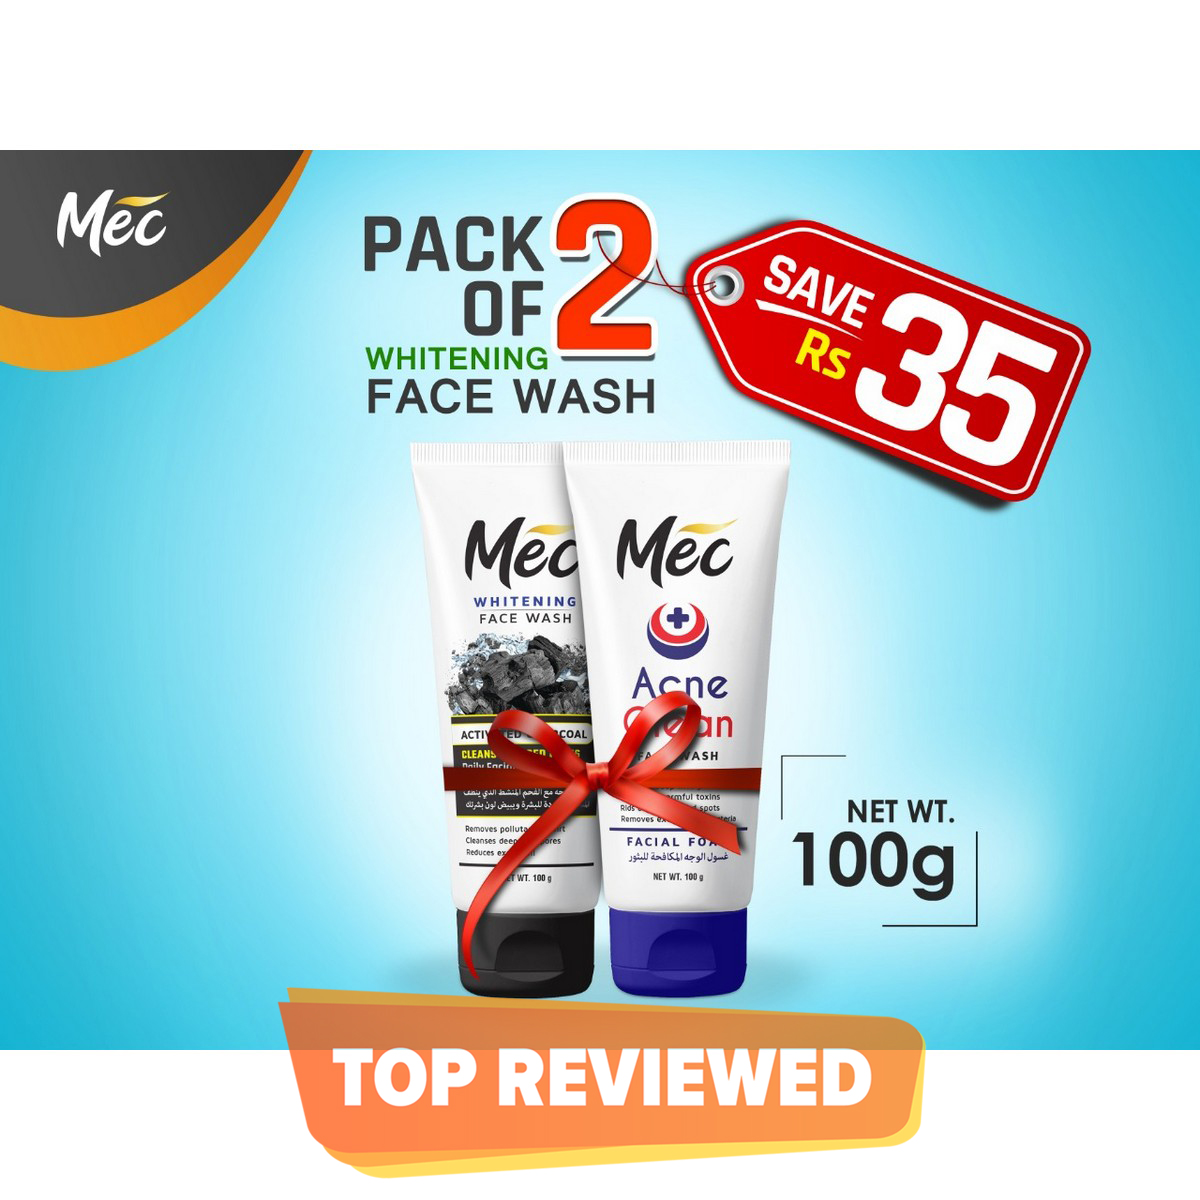 Mec Whitening Face Wash (Pack of 2) 100gm Acne Clean, Activated Charcoal